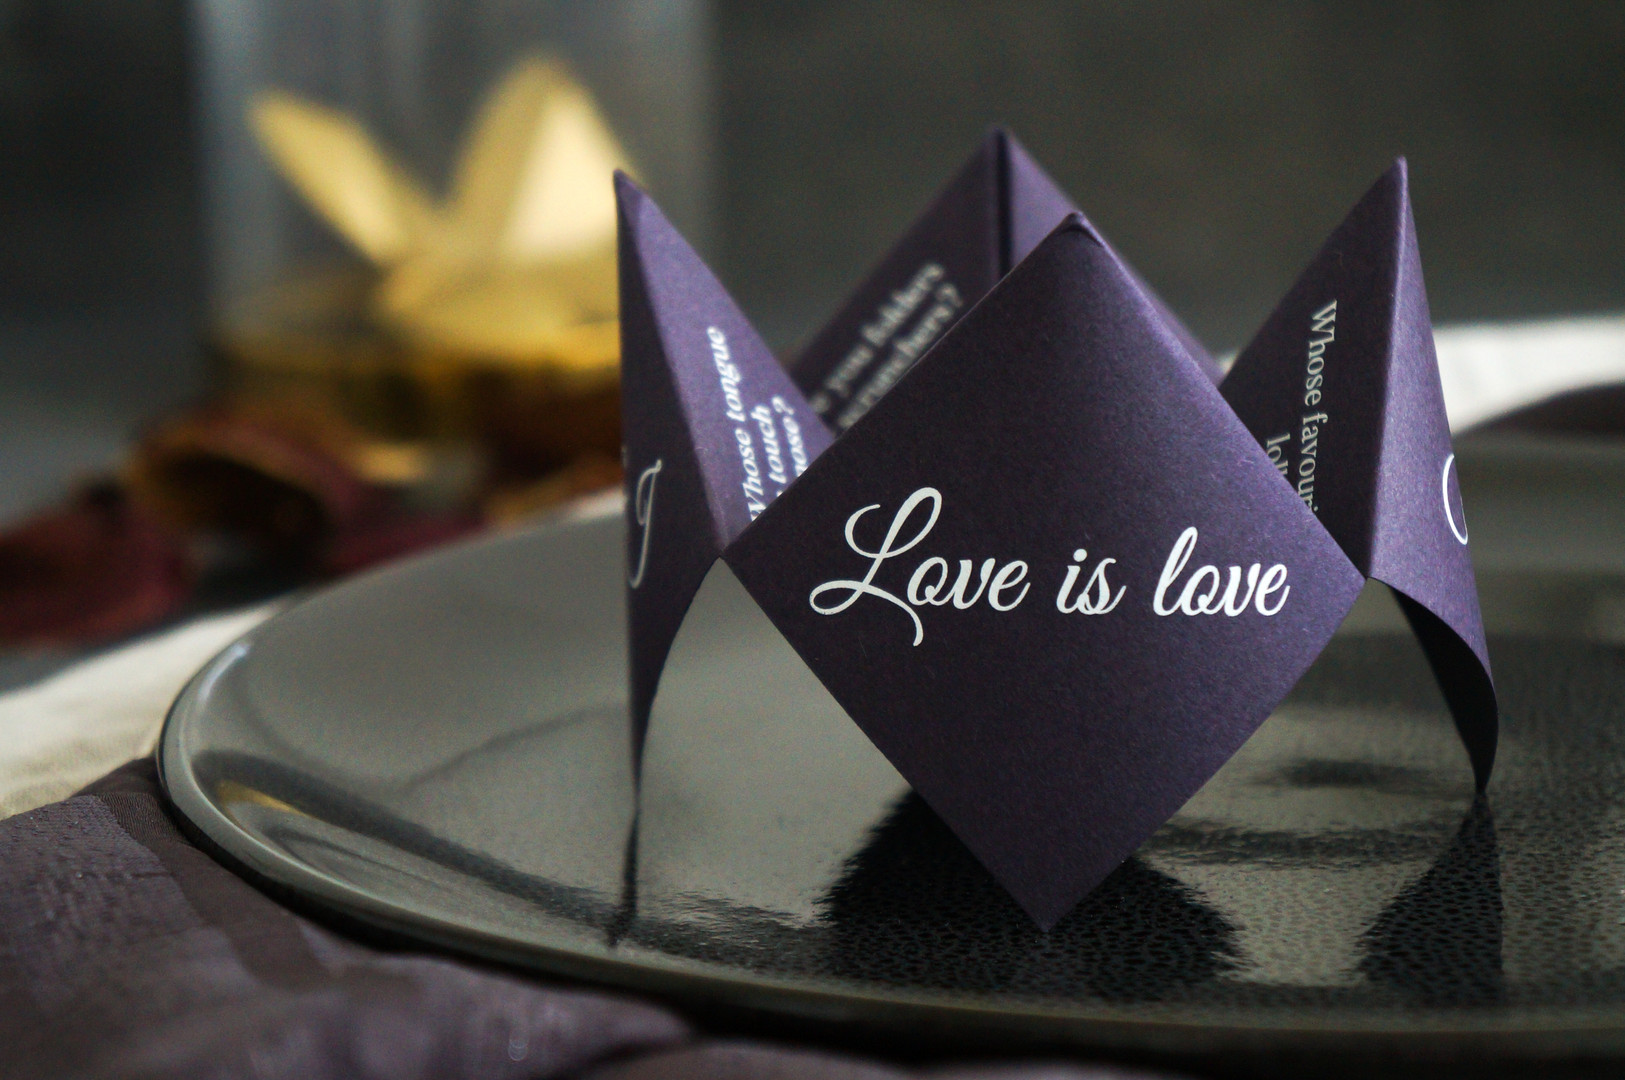 Chatterbox fortune teller place card